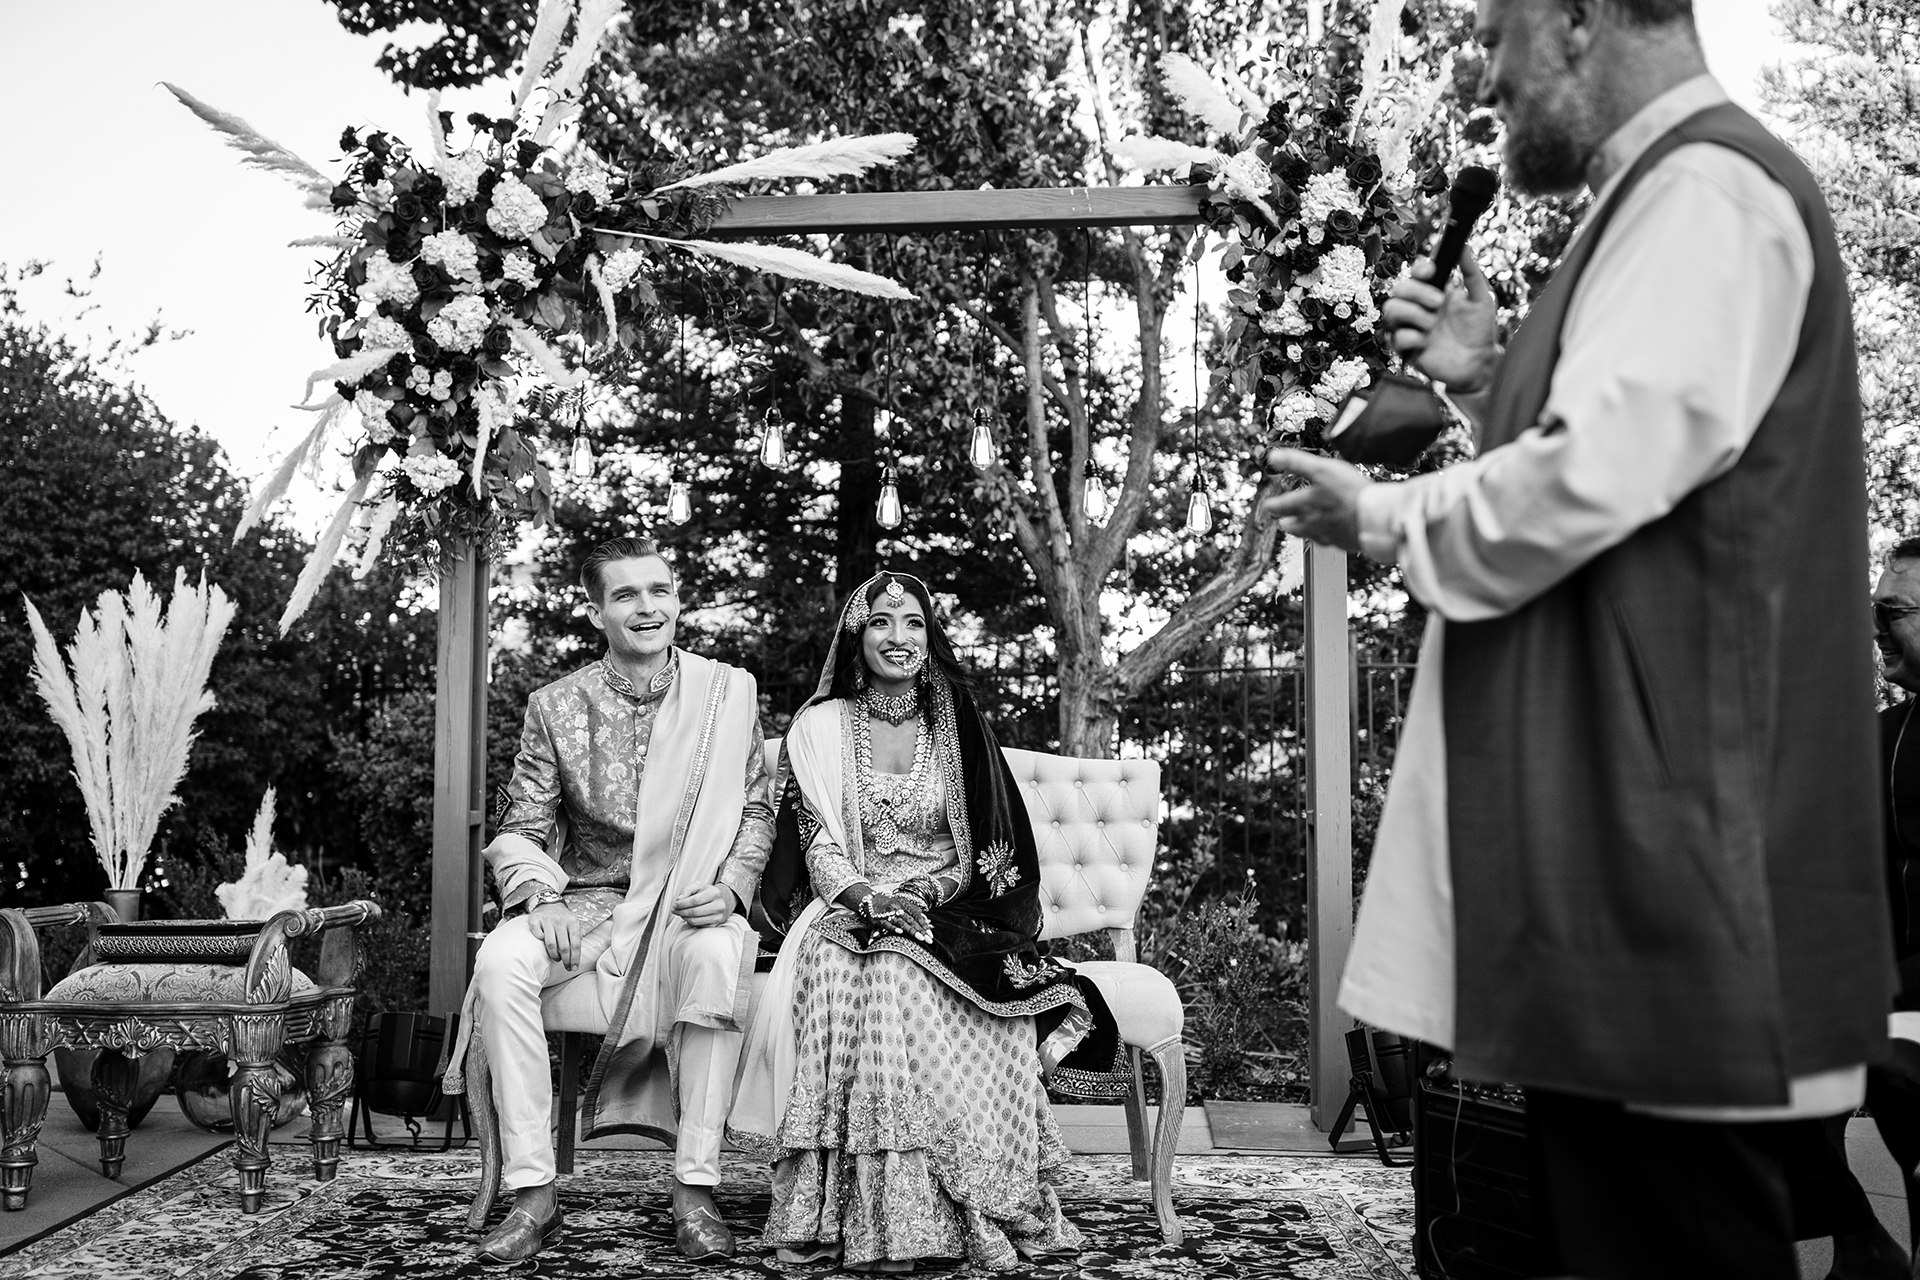 Outdoor Elopement COVID-19 Image from a CA Backyard Ceremony | This day was one full of many emotions, including humor